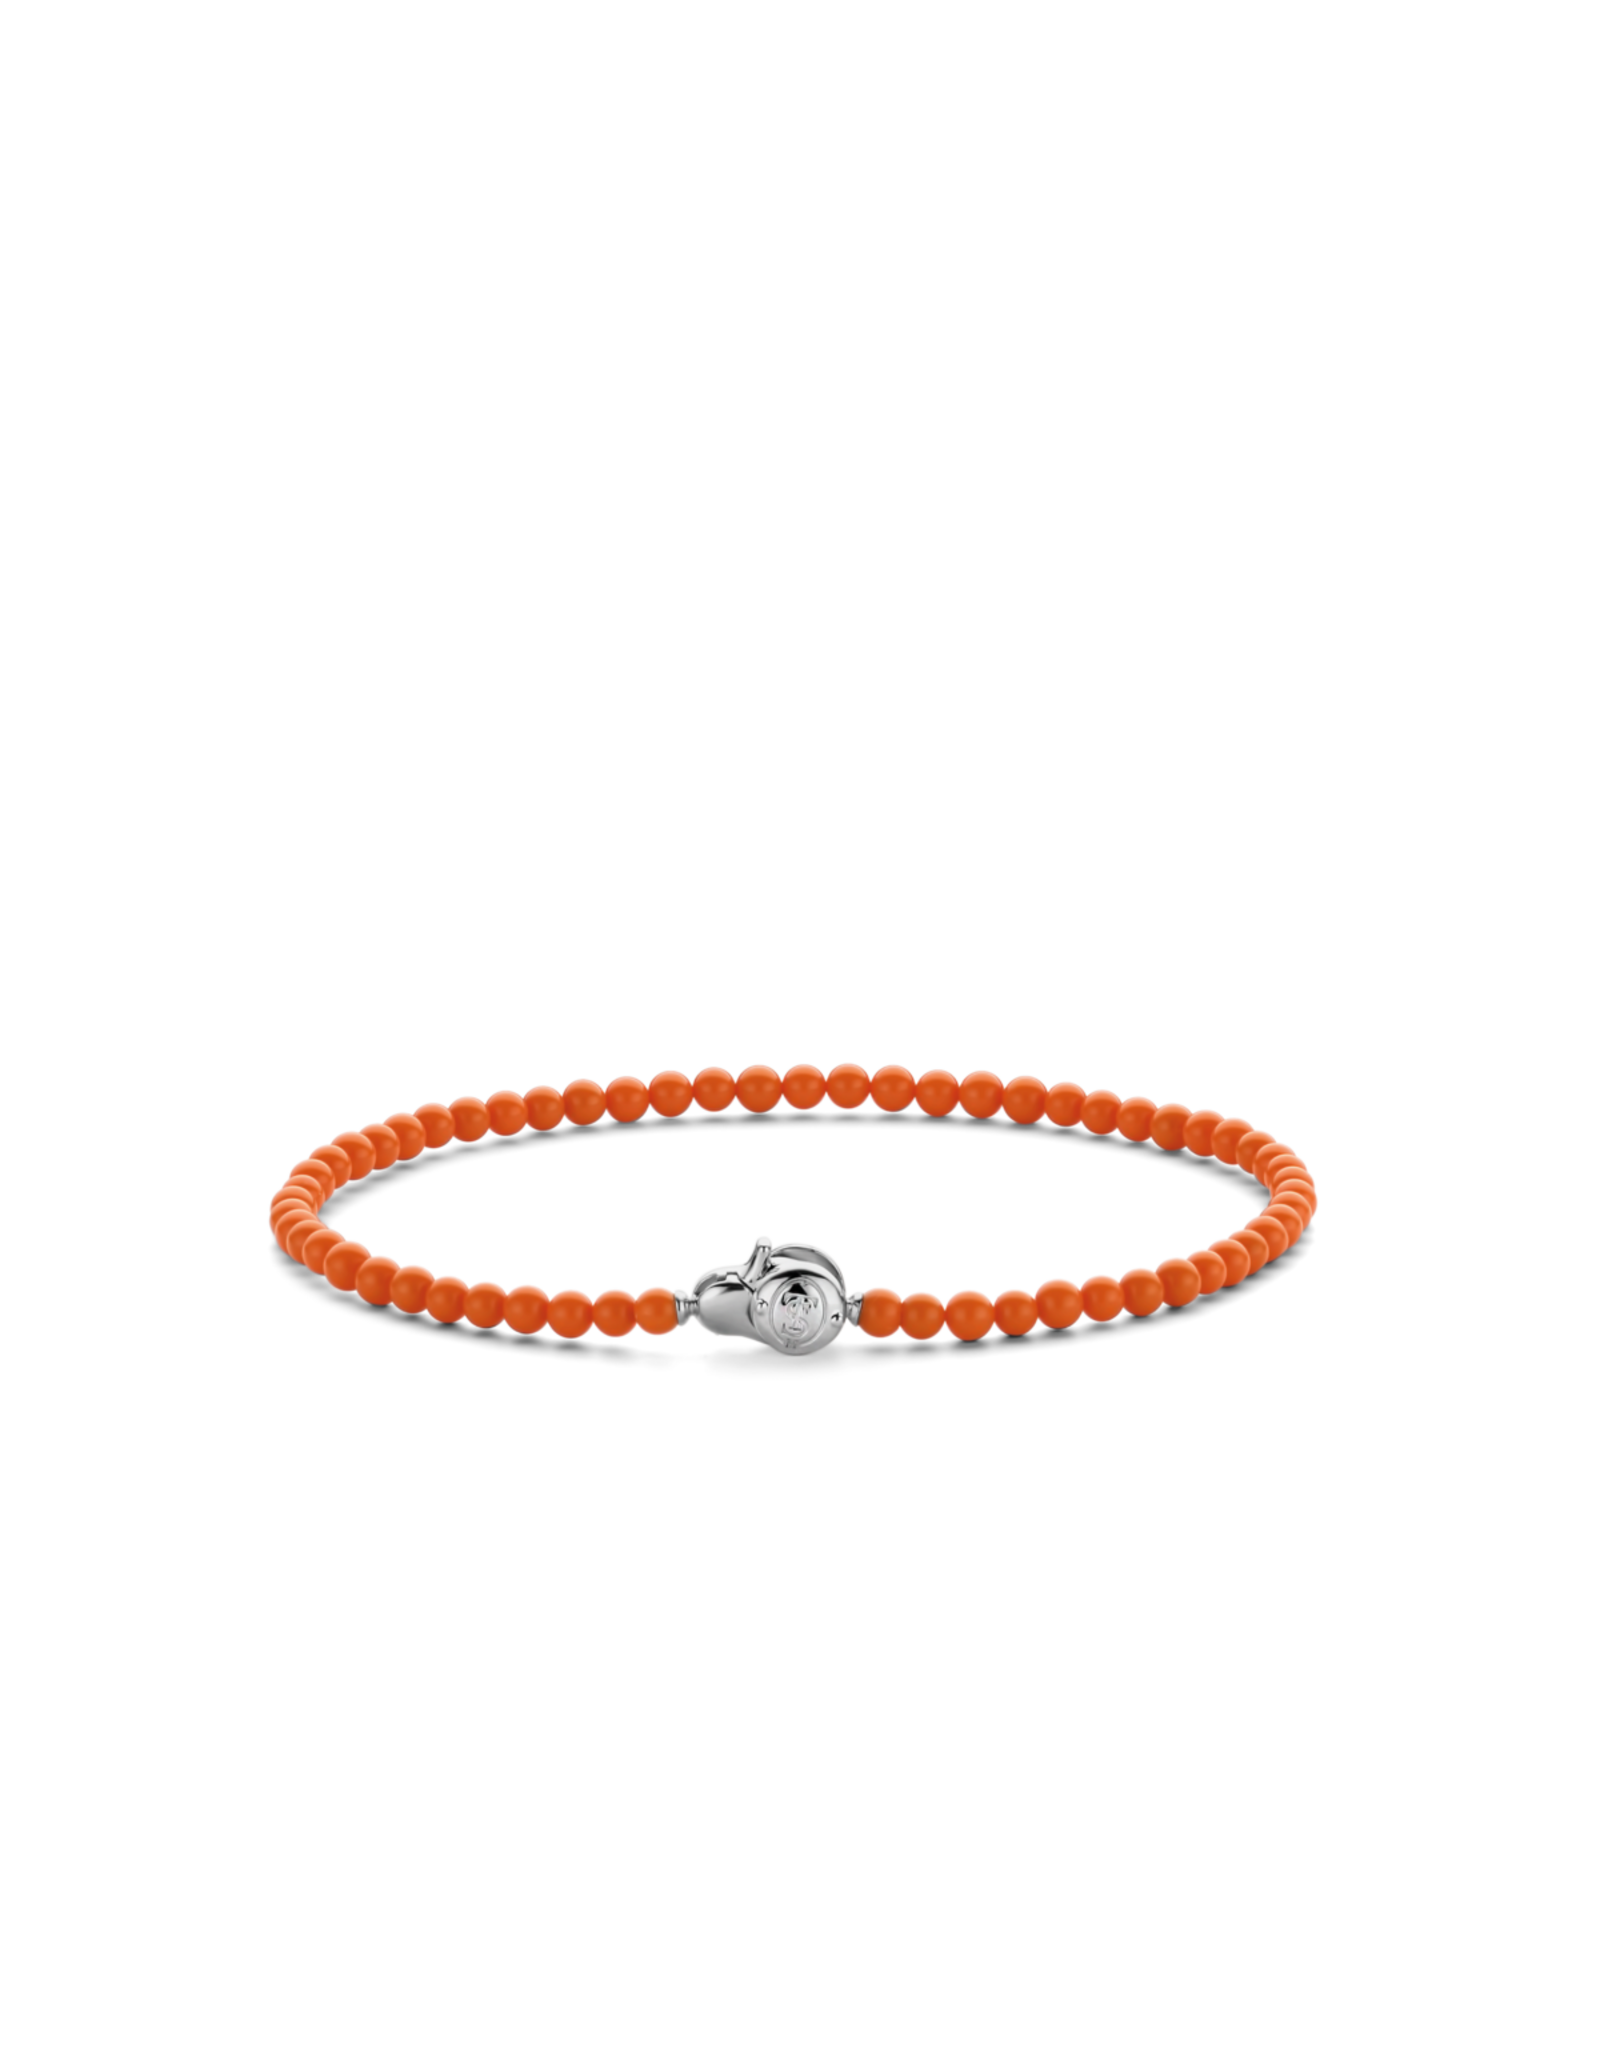 Dainty Coral Orange Beaded Bracelet- 2965CO